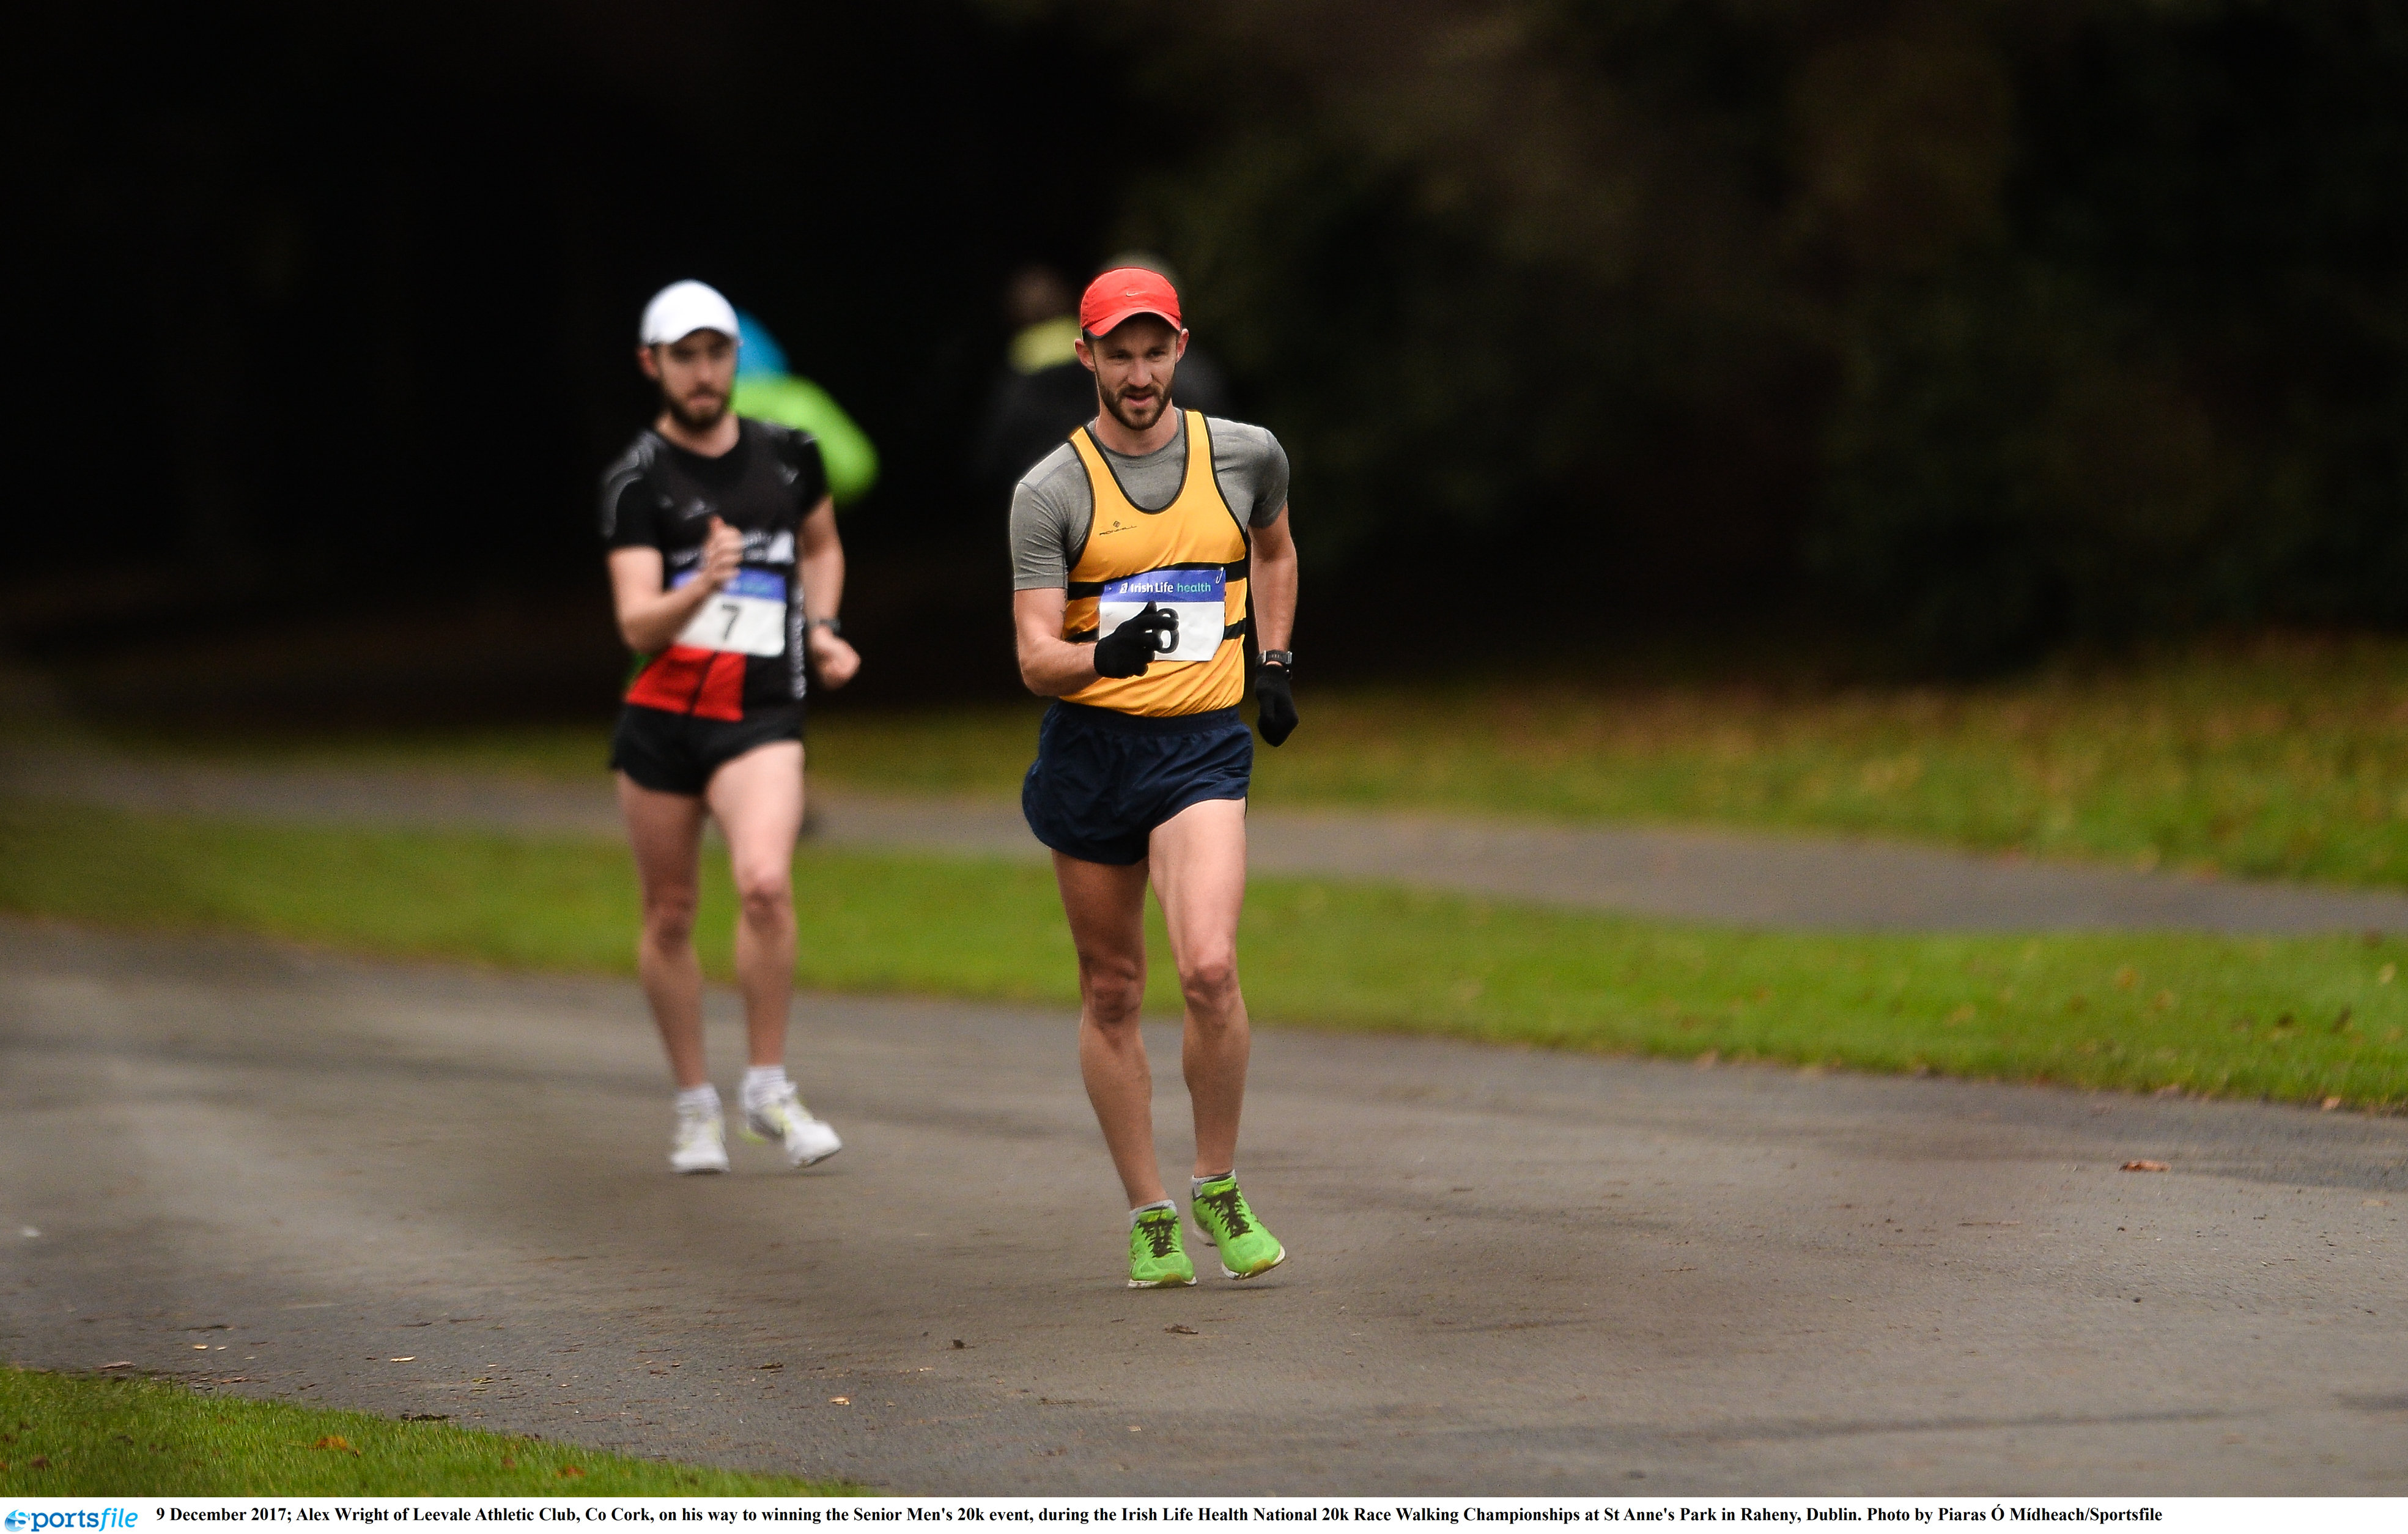 Gearing up for the National Race Walking Championships this weekend